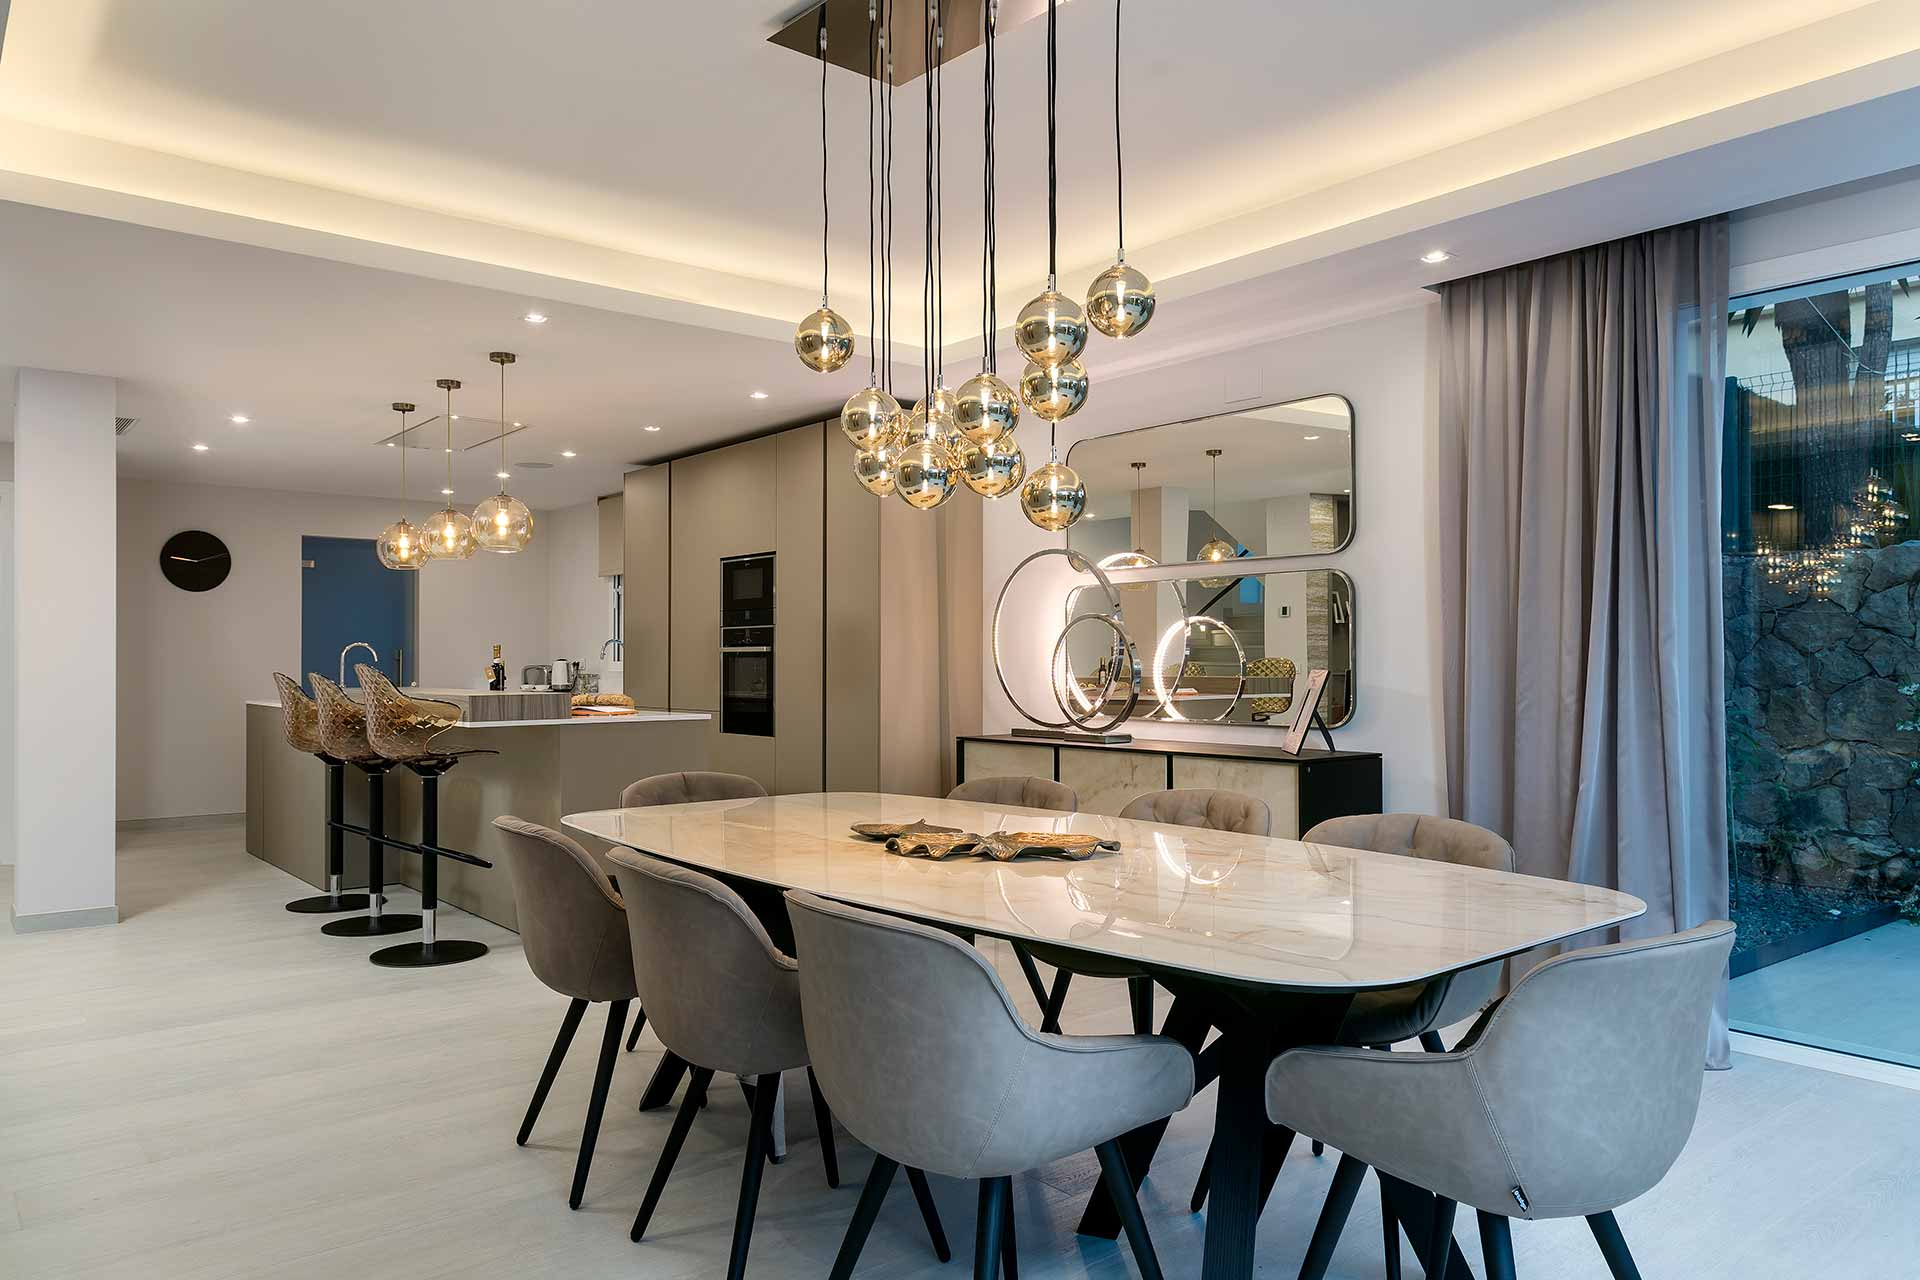 Contemporary Family Villa Dining and Kitchen Area